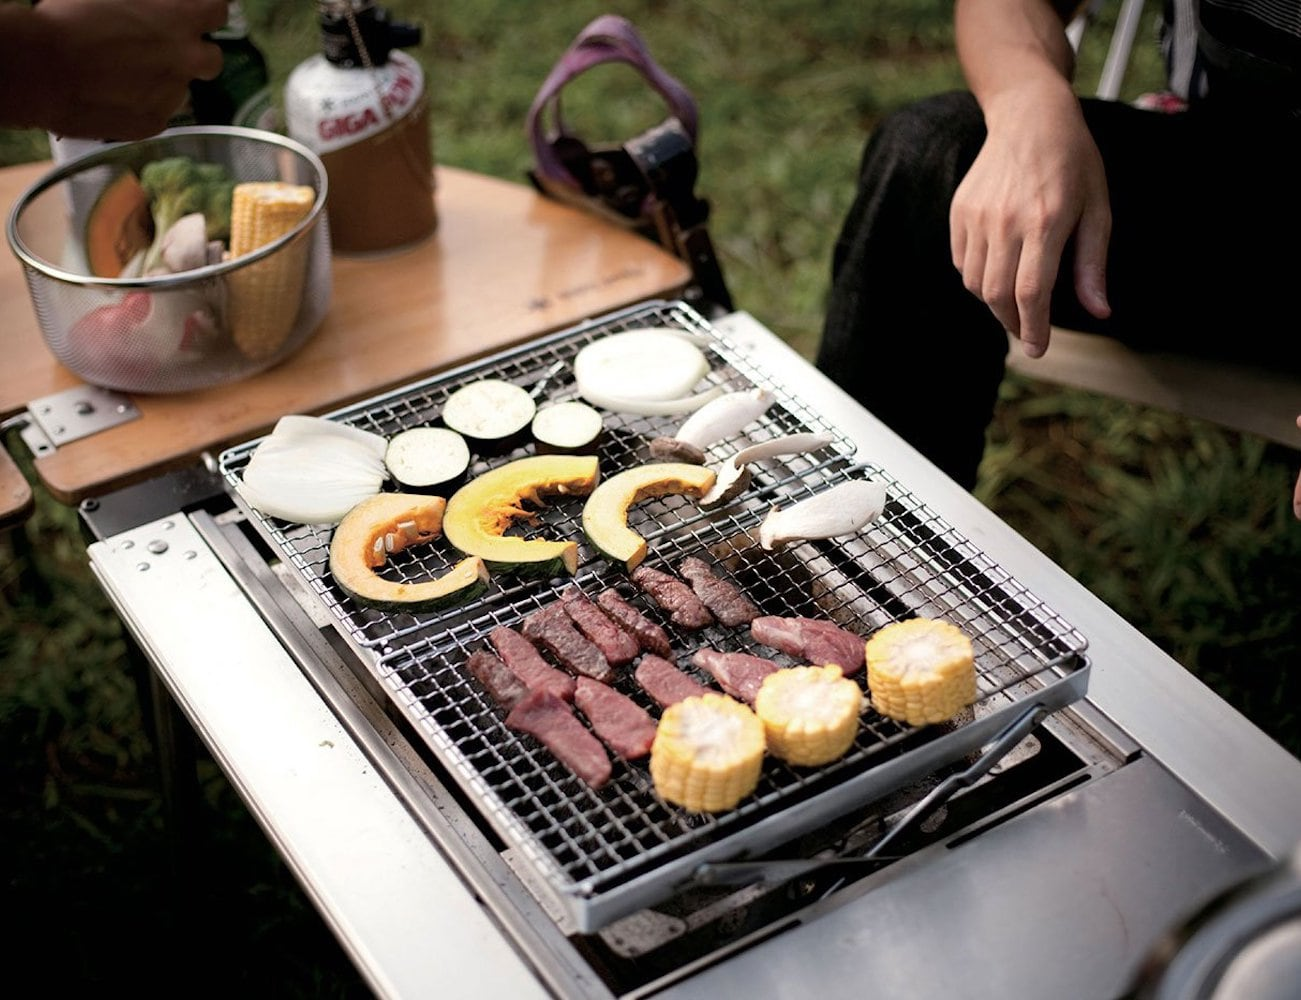 Snow Peak Double BBQ Box Iron Grill Table lets you grill right where you're eating